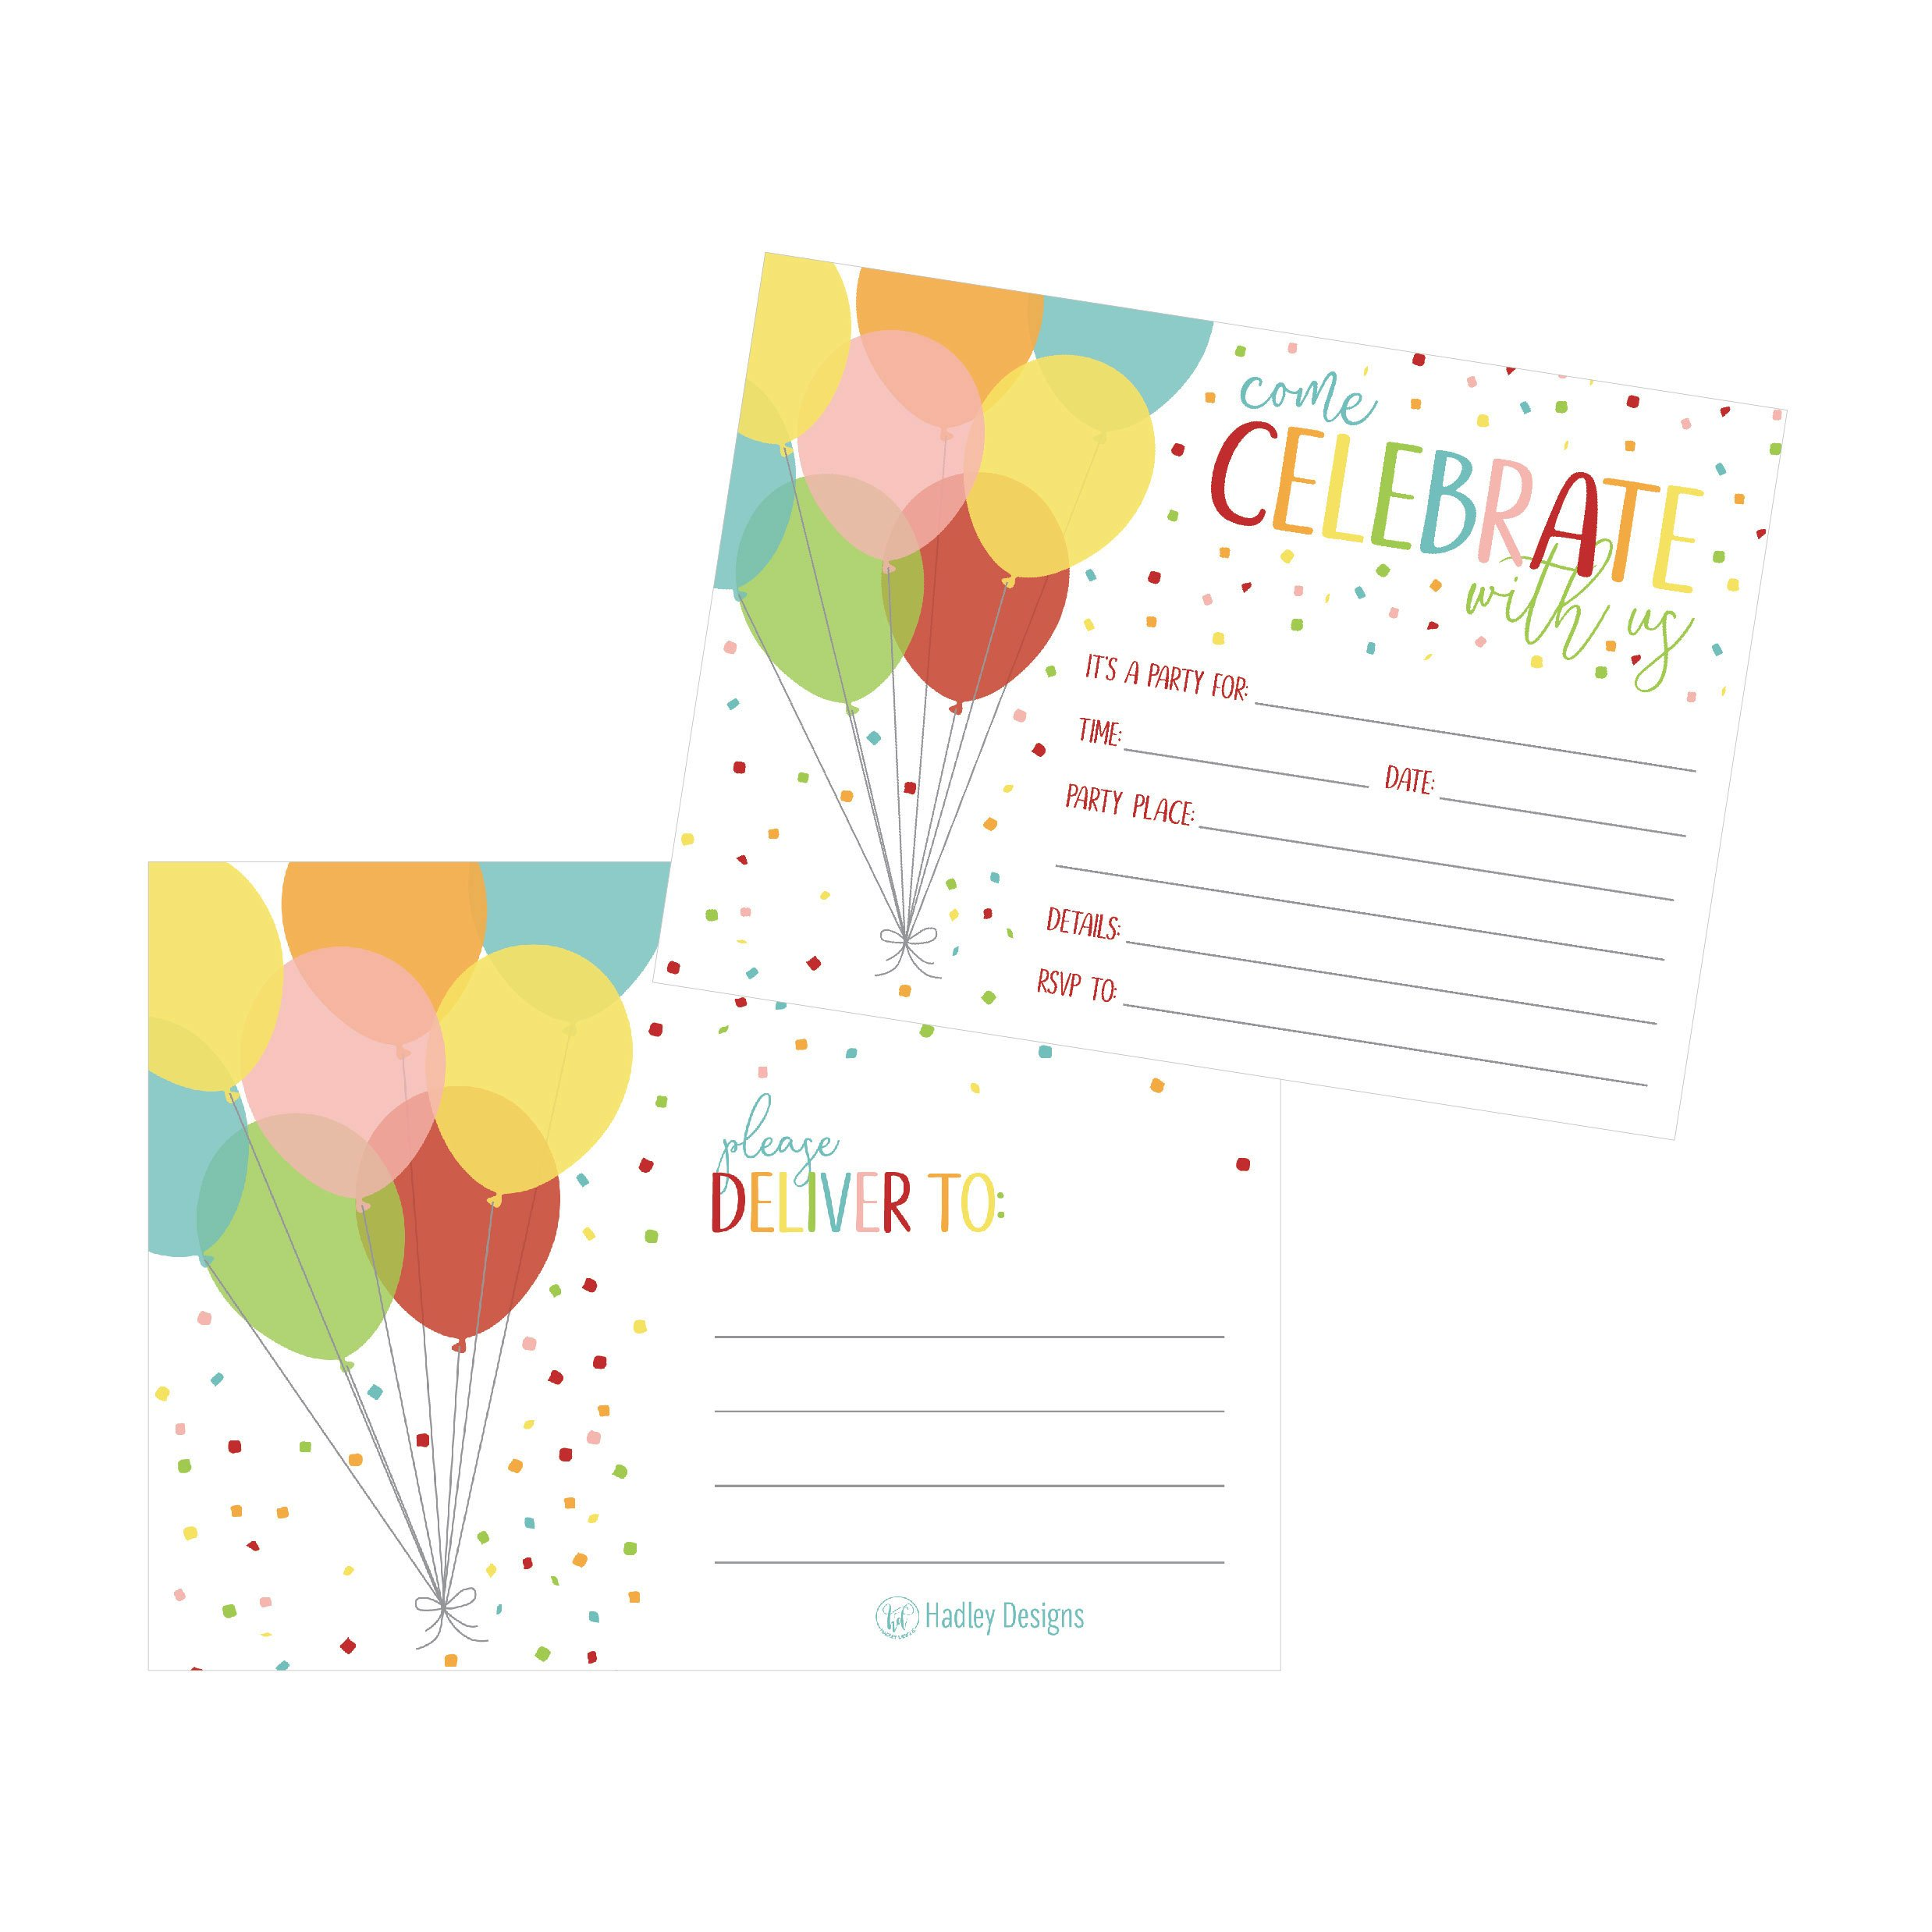 25 Rainbow Balloon Party Invitations for Kids, Teens, Adults, Boys & Girls, Blank Children Happy 1st Birthday Invitation Cards, Unique Baby First Bday Invites, Toddler 1 2 3 Year Old Invites Fill In